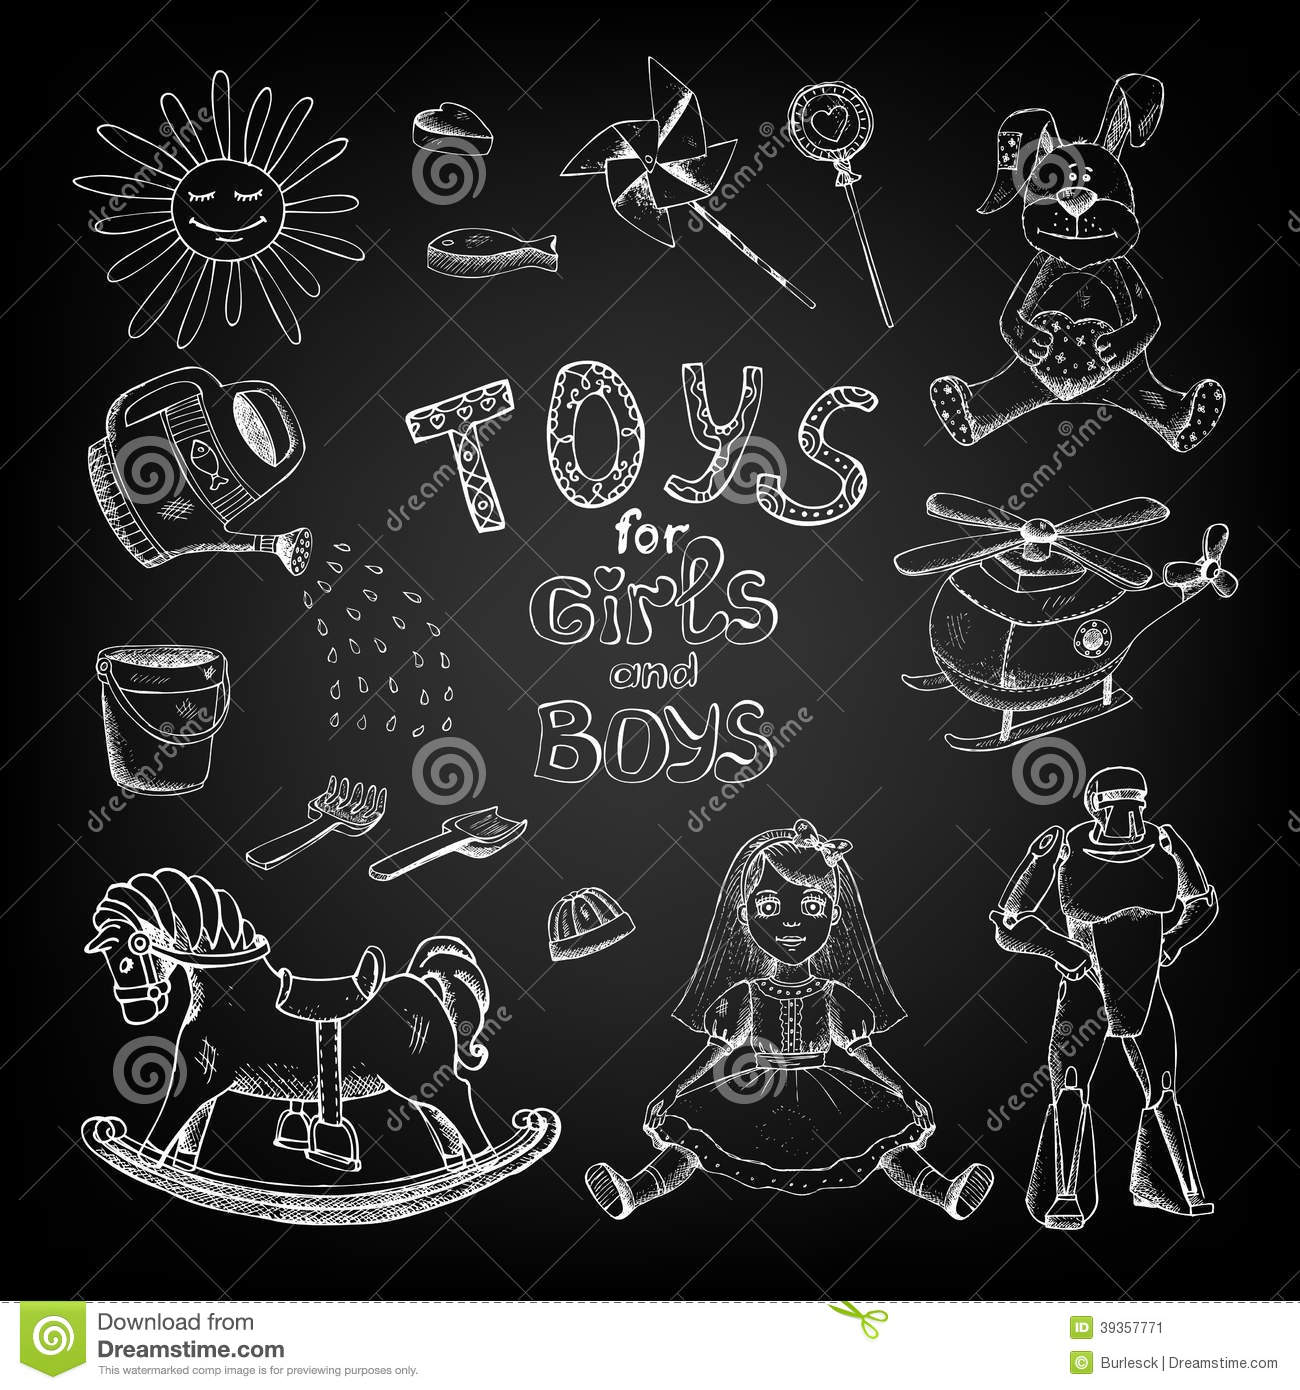 Chalkboard Toys For Girls And Boys Stock Vector Image 39357771